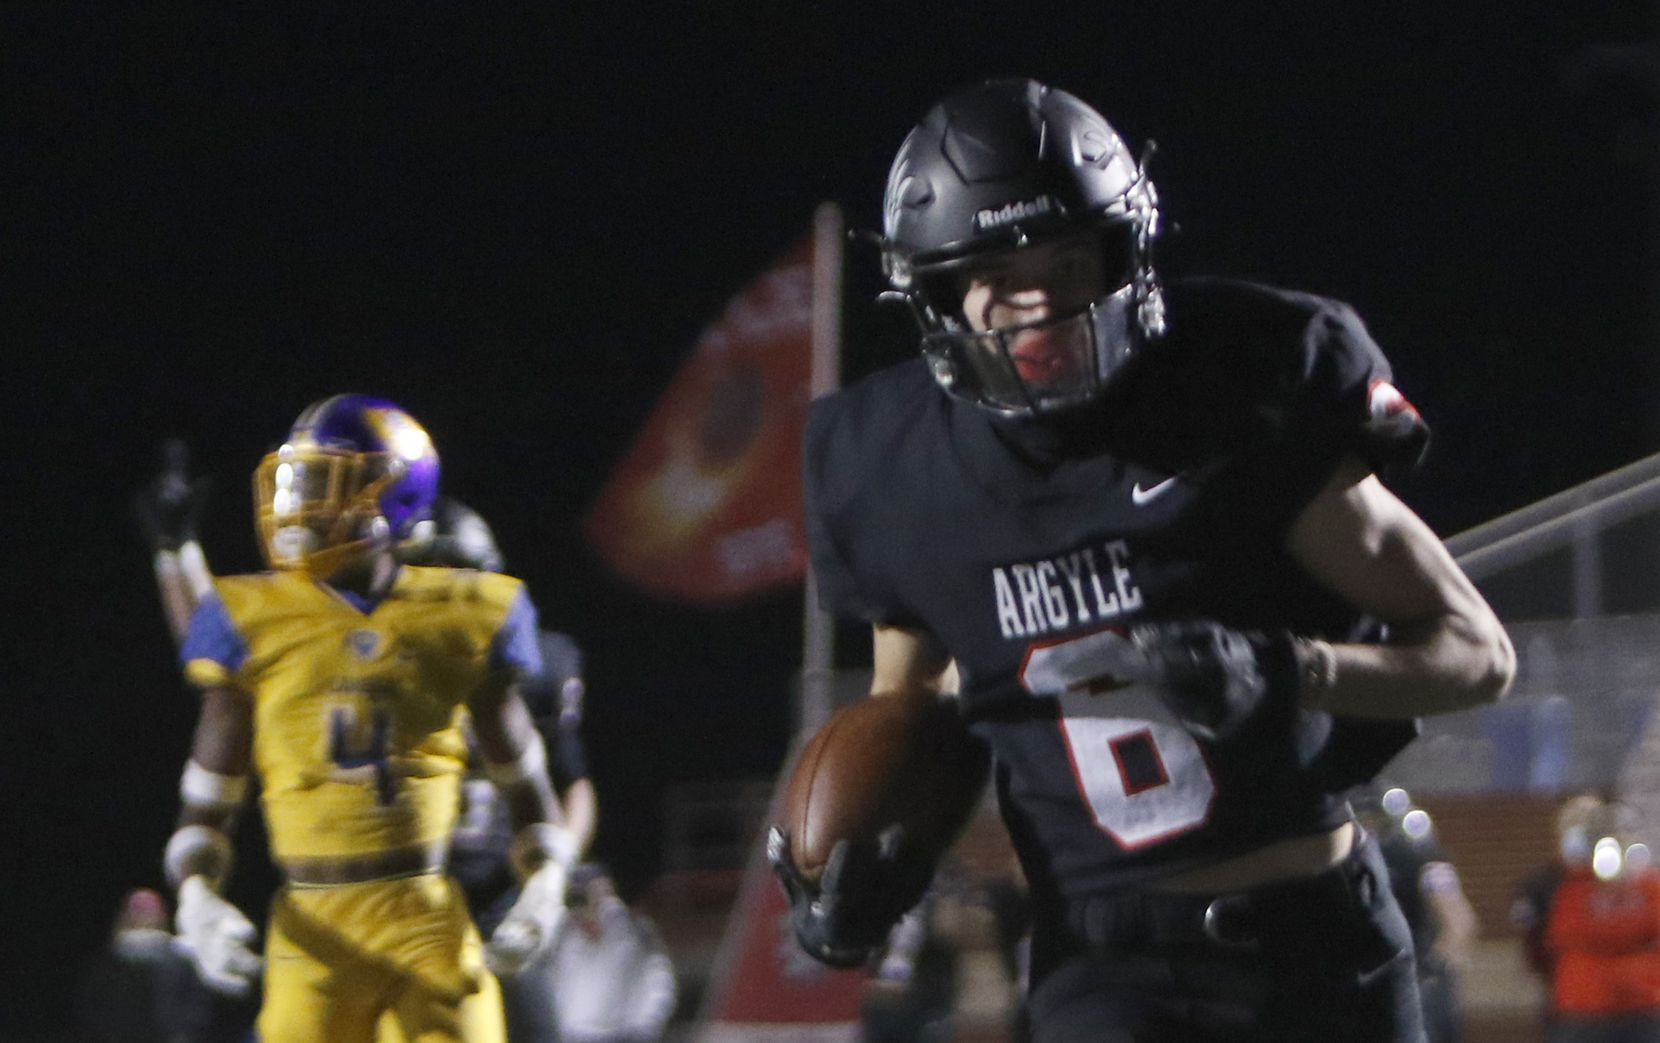 Argyle receiver Hayden Stewart (6) rambles into the end zone for a first quarter receiving touchdown in their game against Waco LaVega. The two teams played their Class 4A Division l Region ll semifinal football playoff game at Joshua's Owl Stadium in Joshua on November 27, 2020.